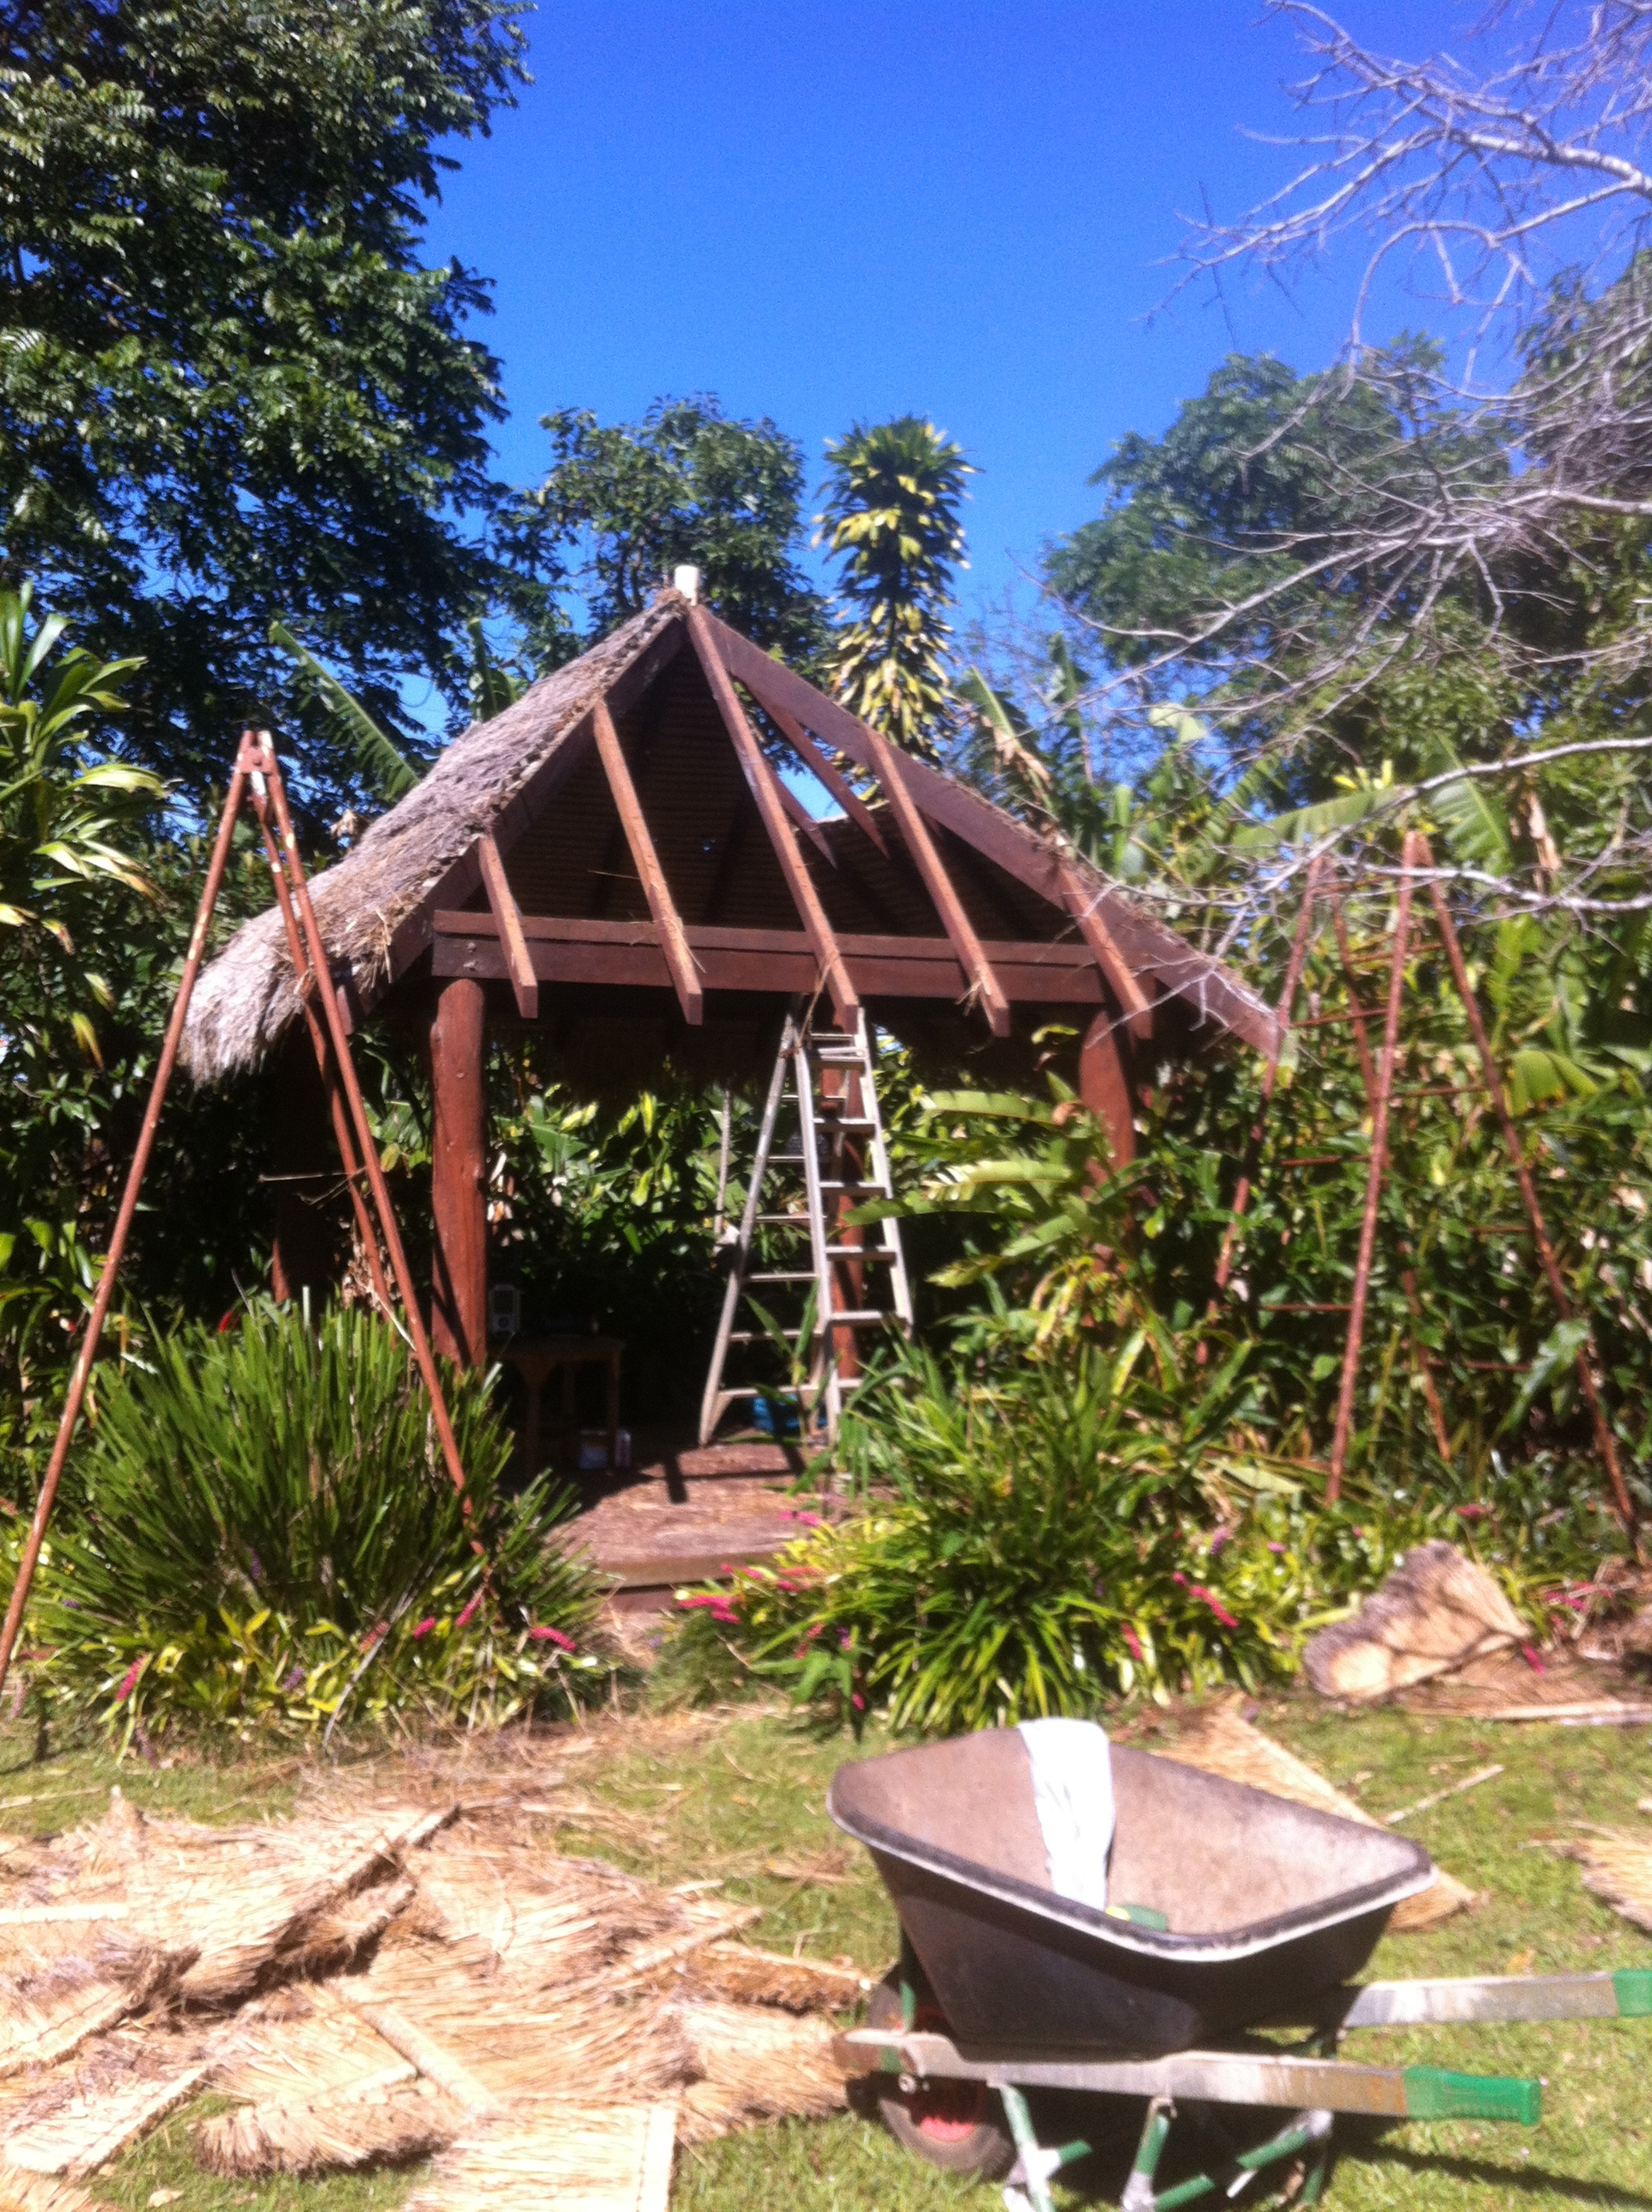 Balinese hut construction